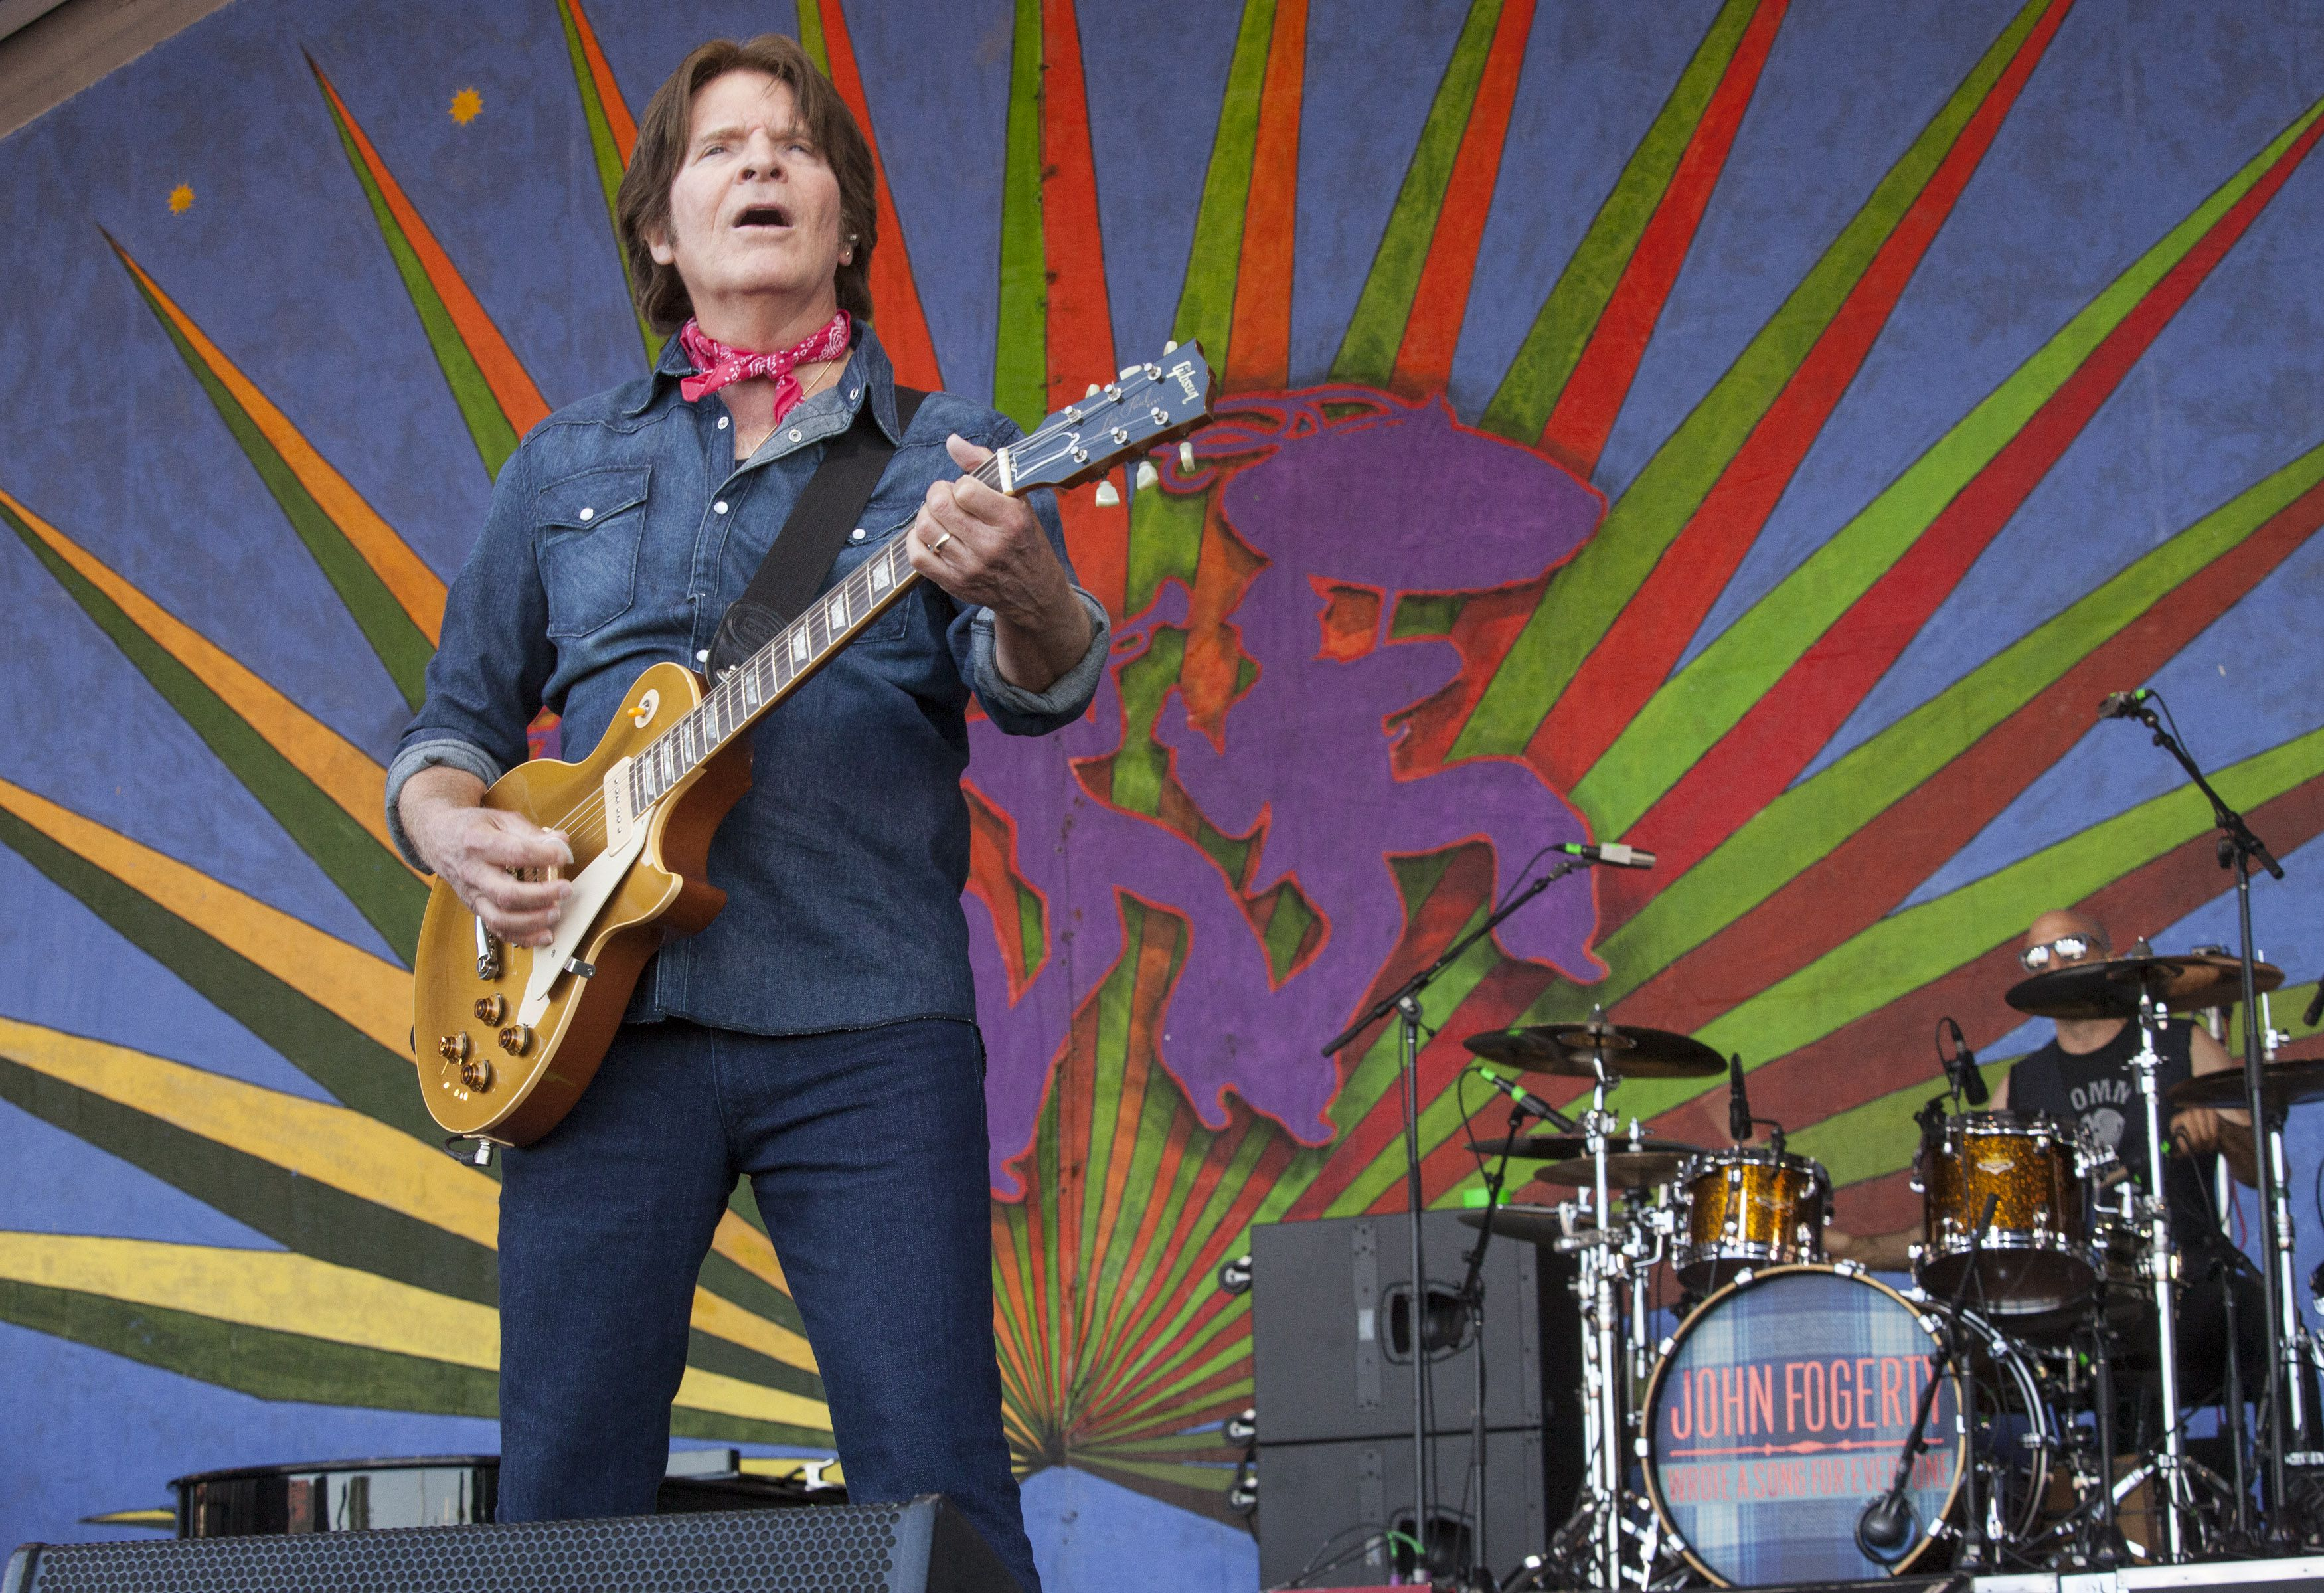 2014 New Orleans Jazz & Heritage Festival - Day 7 NEW ORLEANS, LA - MAY 04: John Fogerty performs during the 2014 New Orleans Jazz & Heritage Festival at Fair Grounds Race Course on May 4, 2014 in New Orleans, Louisiana